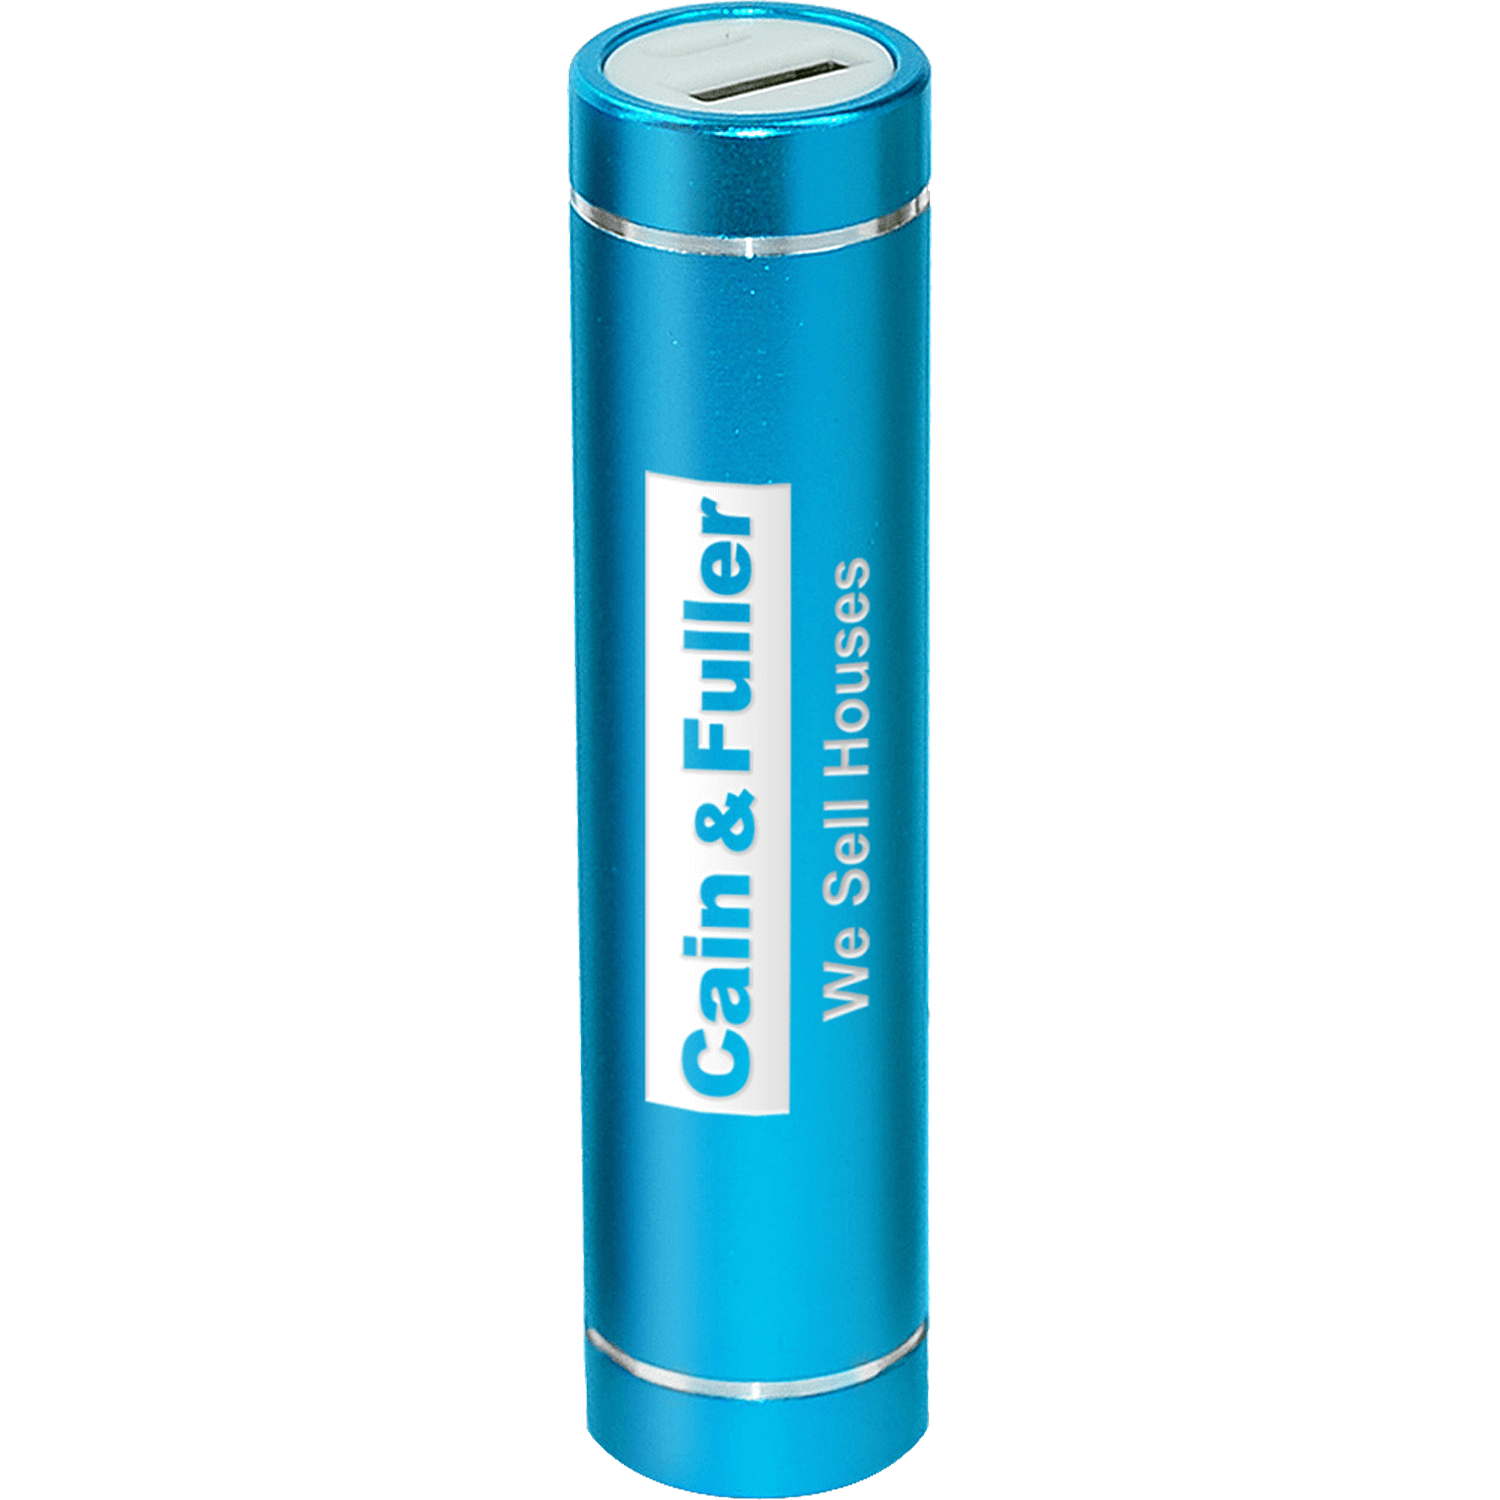 Engraved Cylinder Power Bank Charger 2200mAh